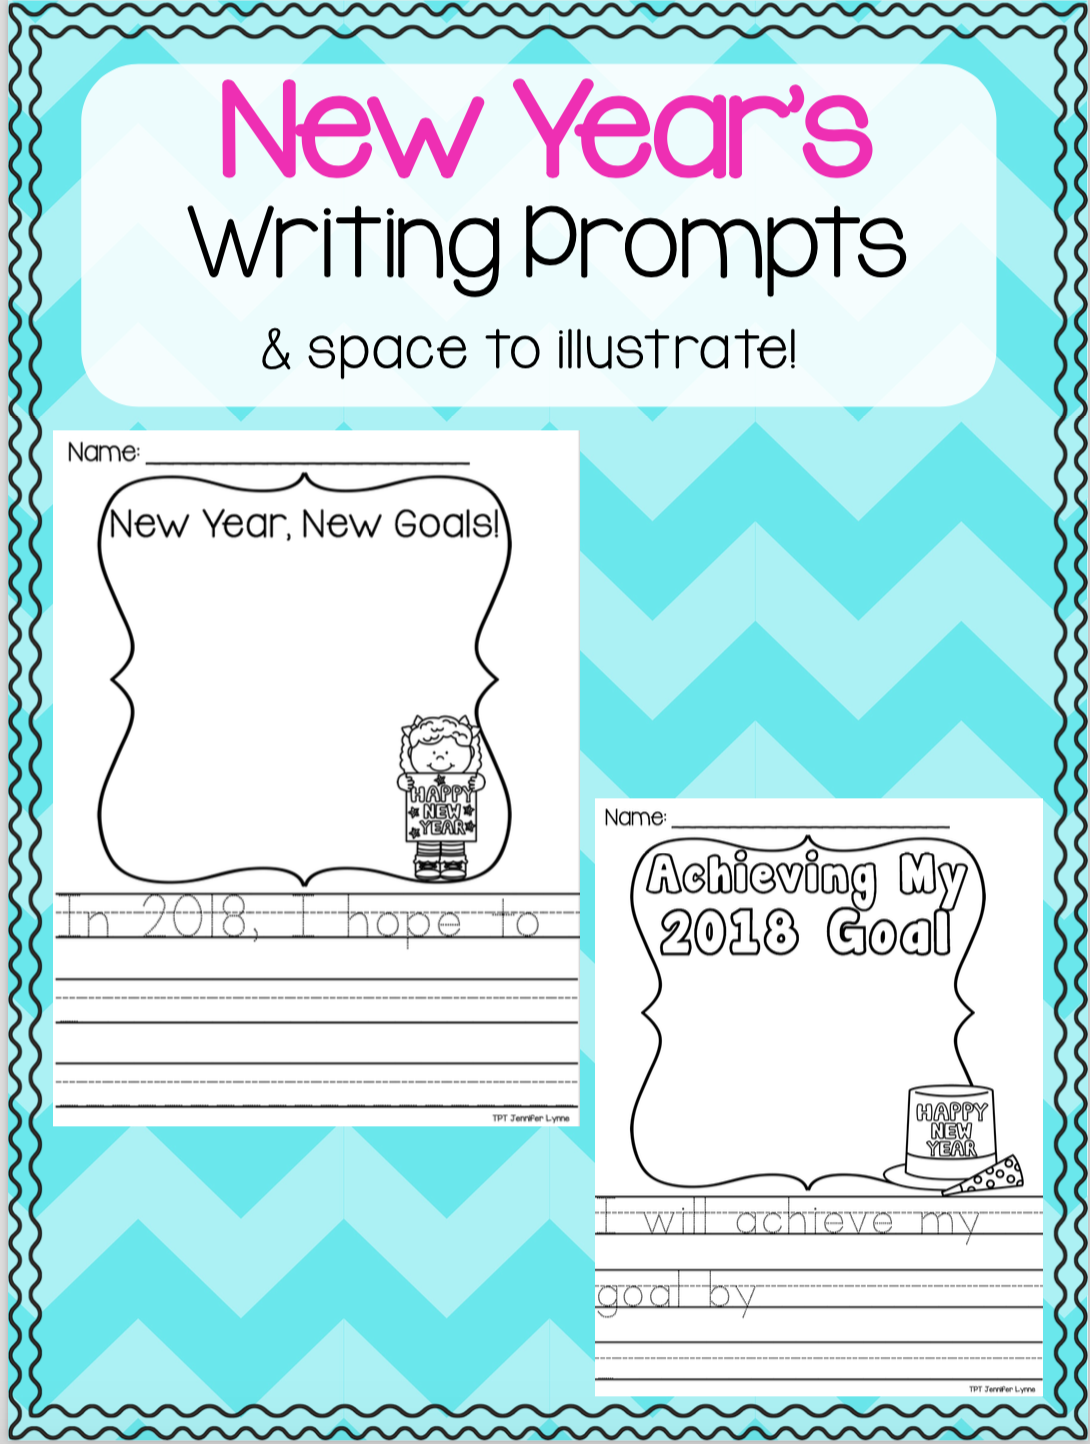 New Year\'s Resolution Goals and Writing Prompts | Prompts, Writing ...